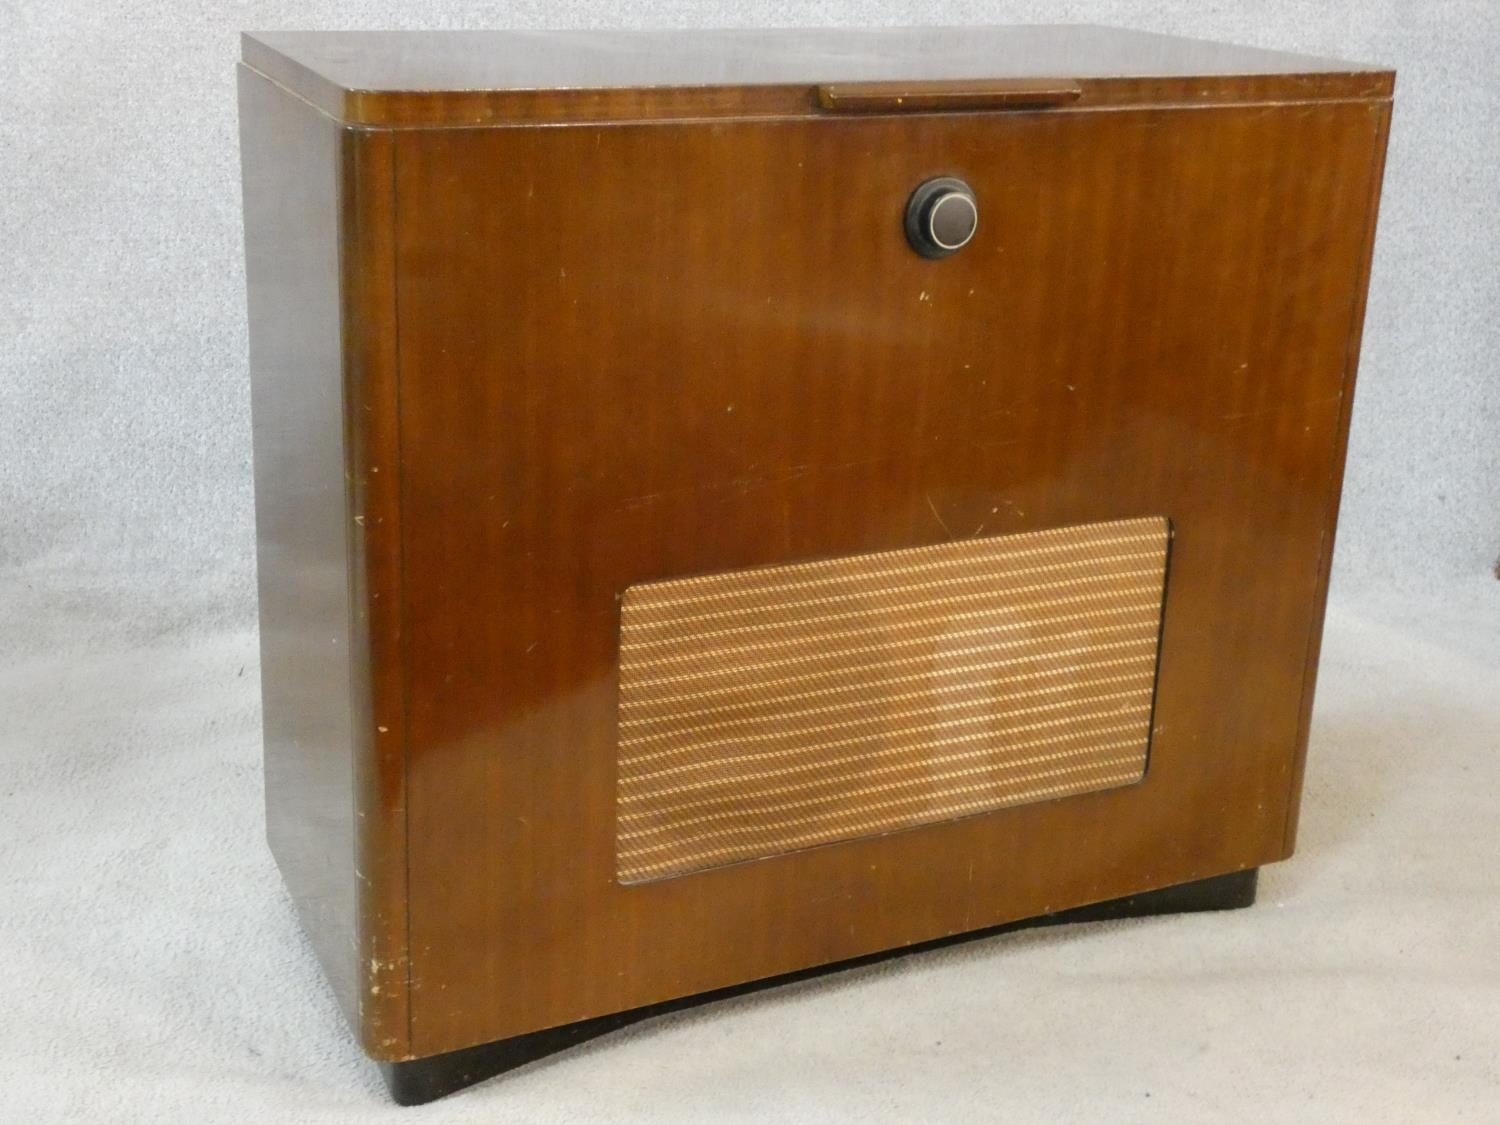 A vintage teak floor standing Ekco radiogram and record player. H.72 W.83 D.39cm - Image 2 of 17